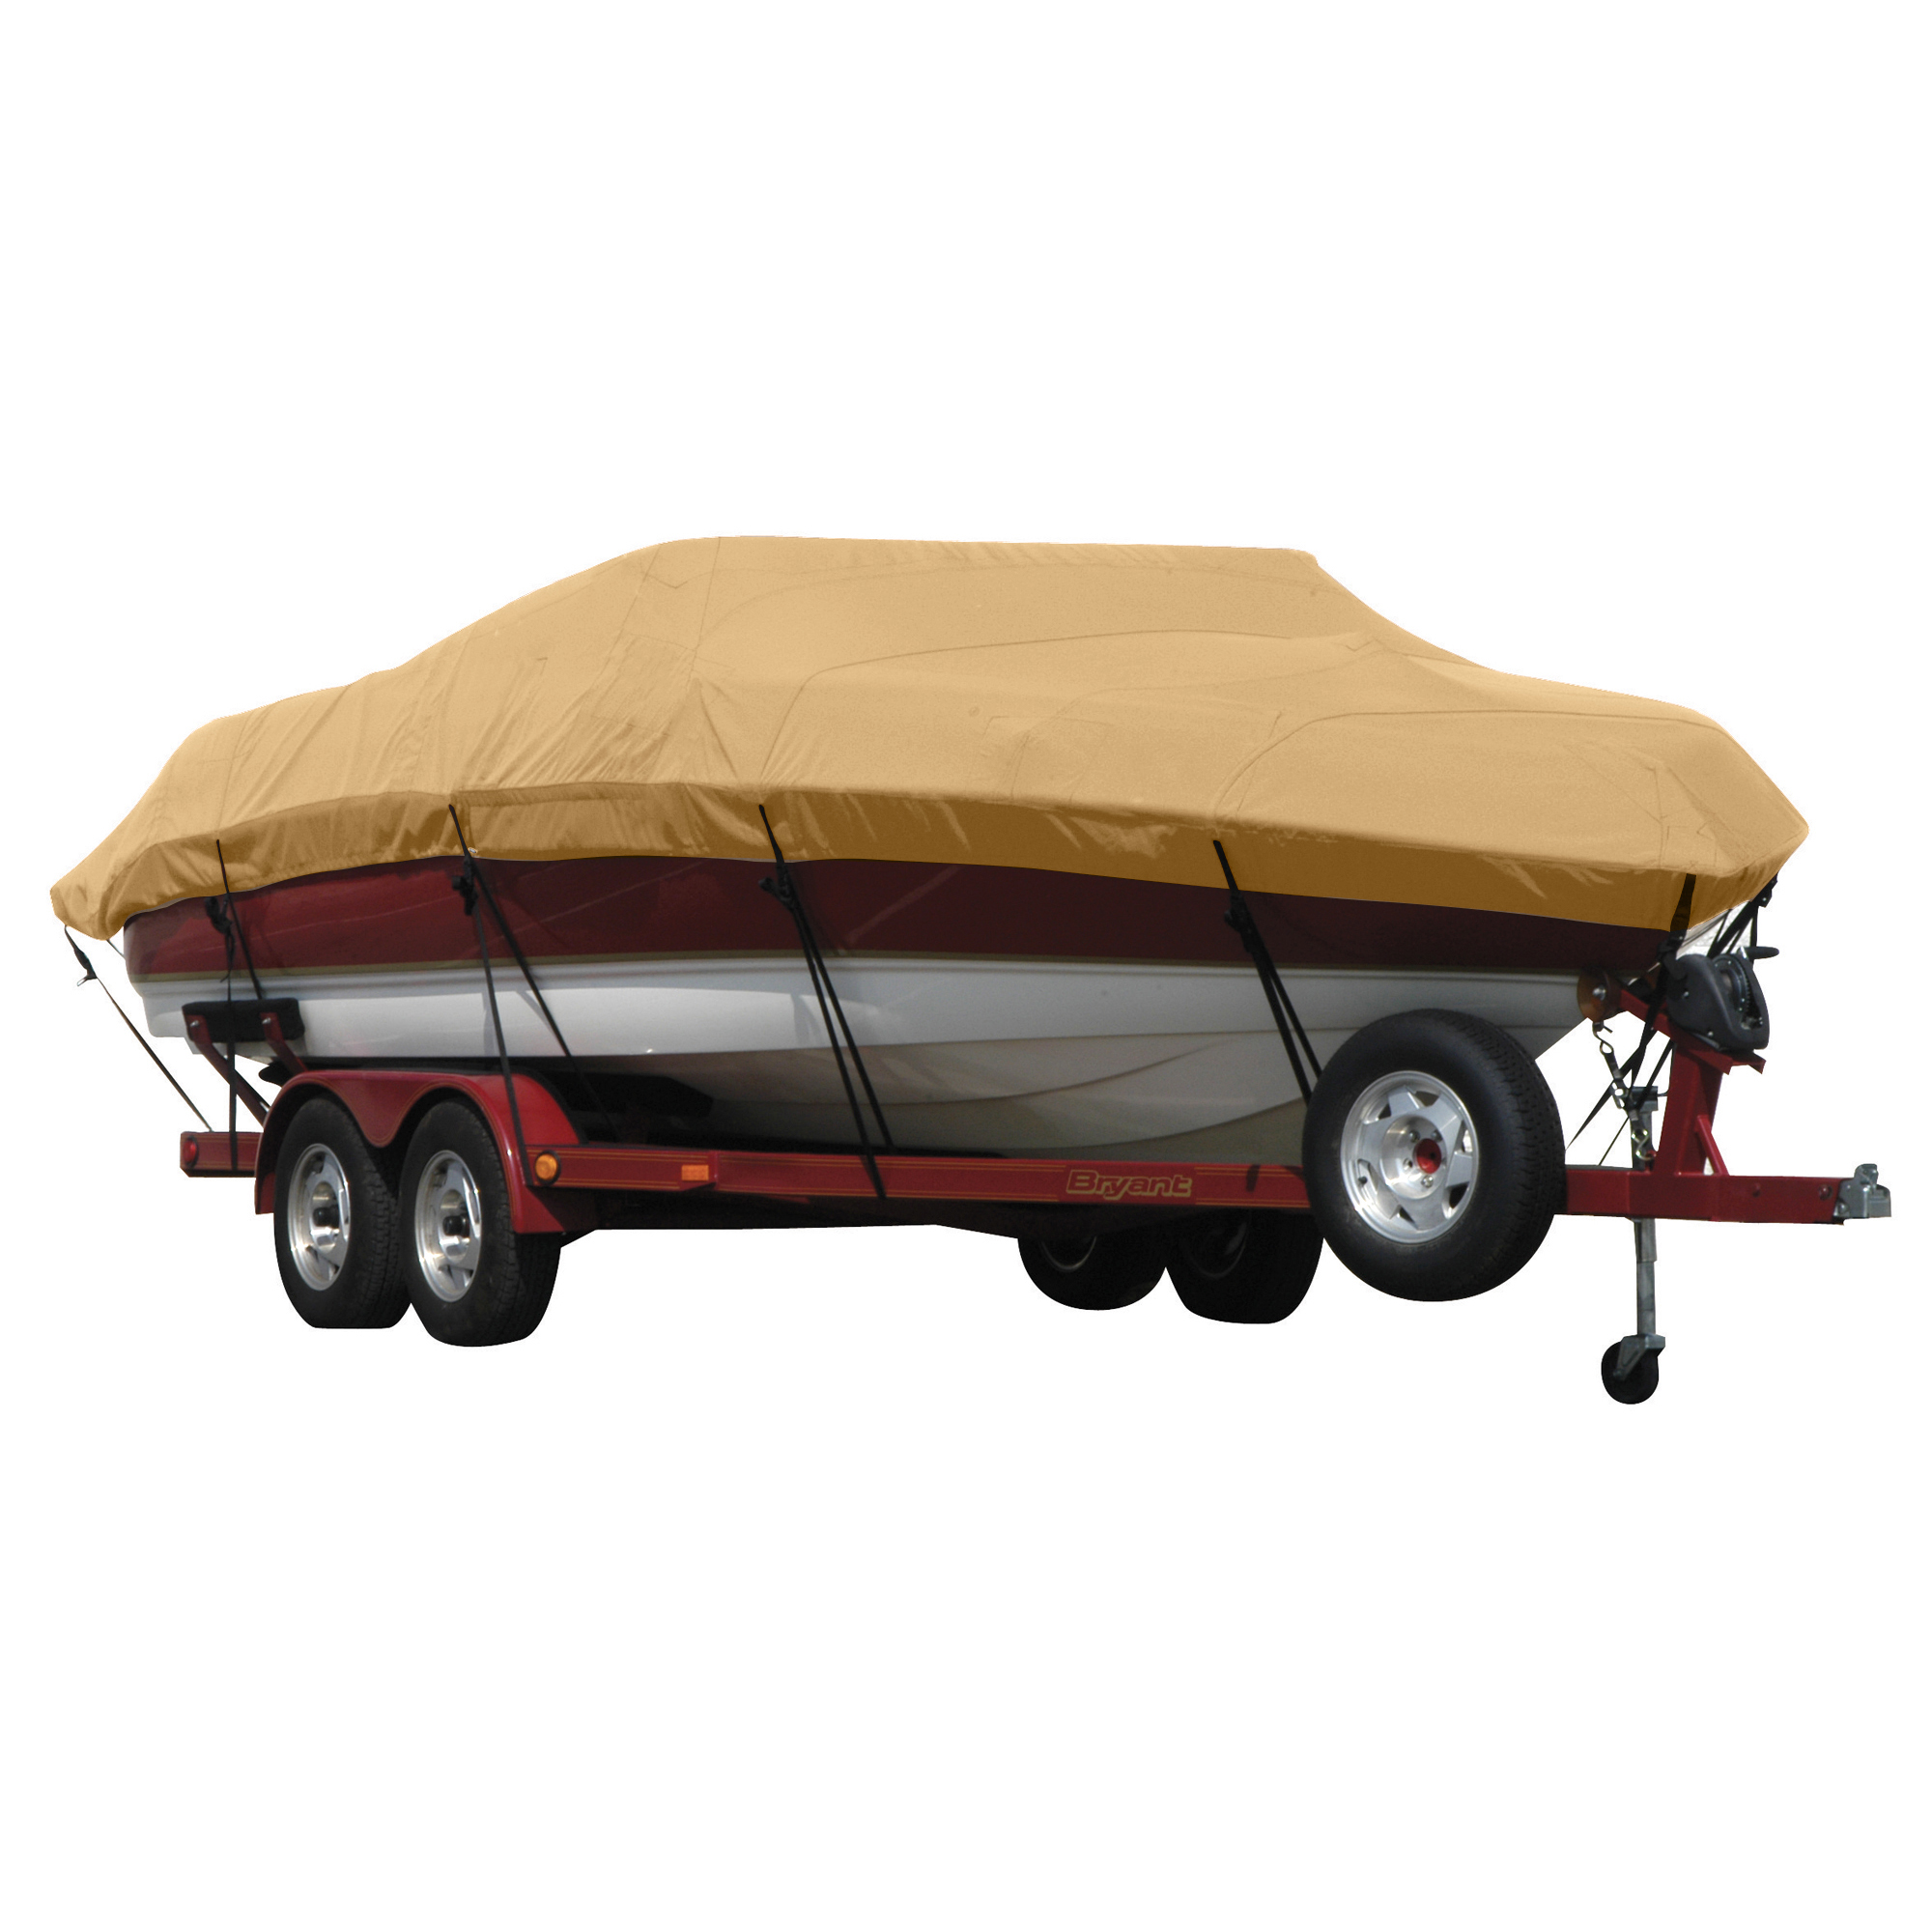 Exact Fit Covermate Sunbrella Boat Cover for Princecraft Super Pro 176 Super Pro 176 Fish N Promenade W/Ski Rope Guard O/B. Toast